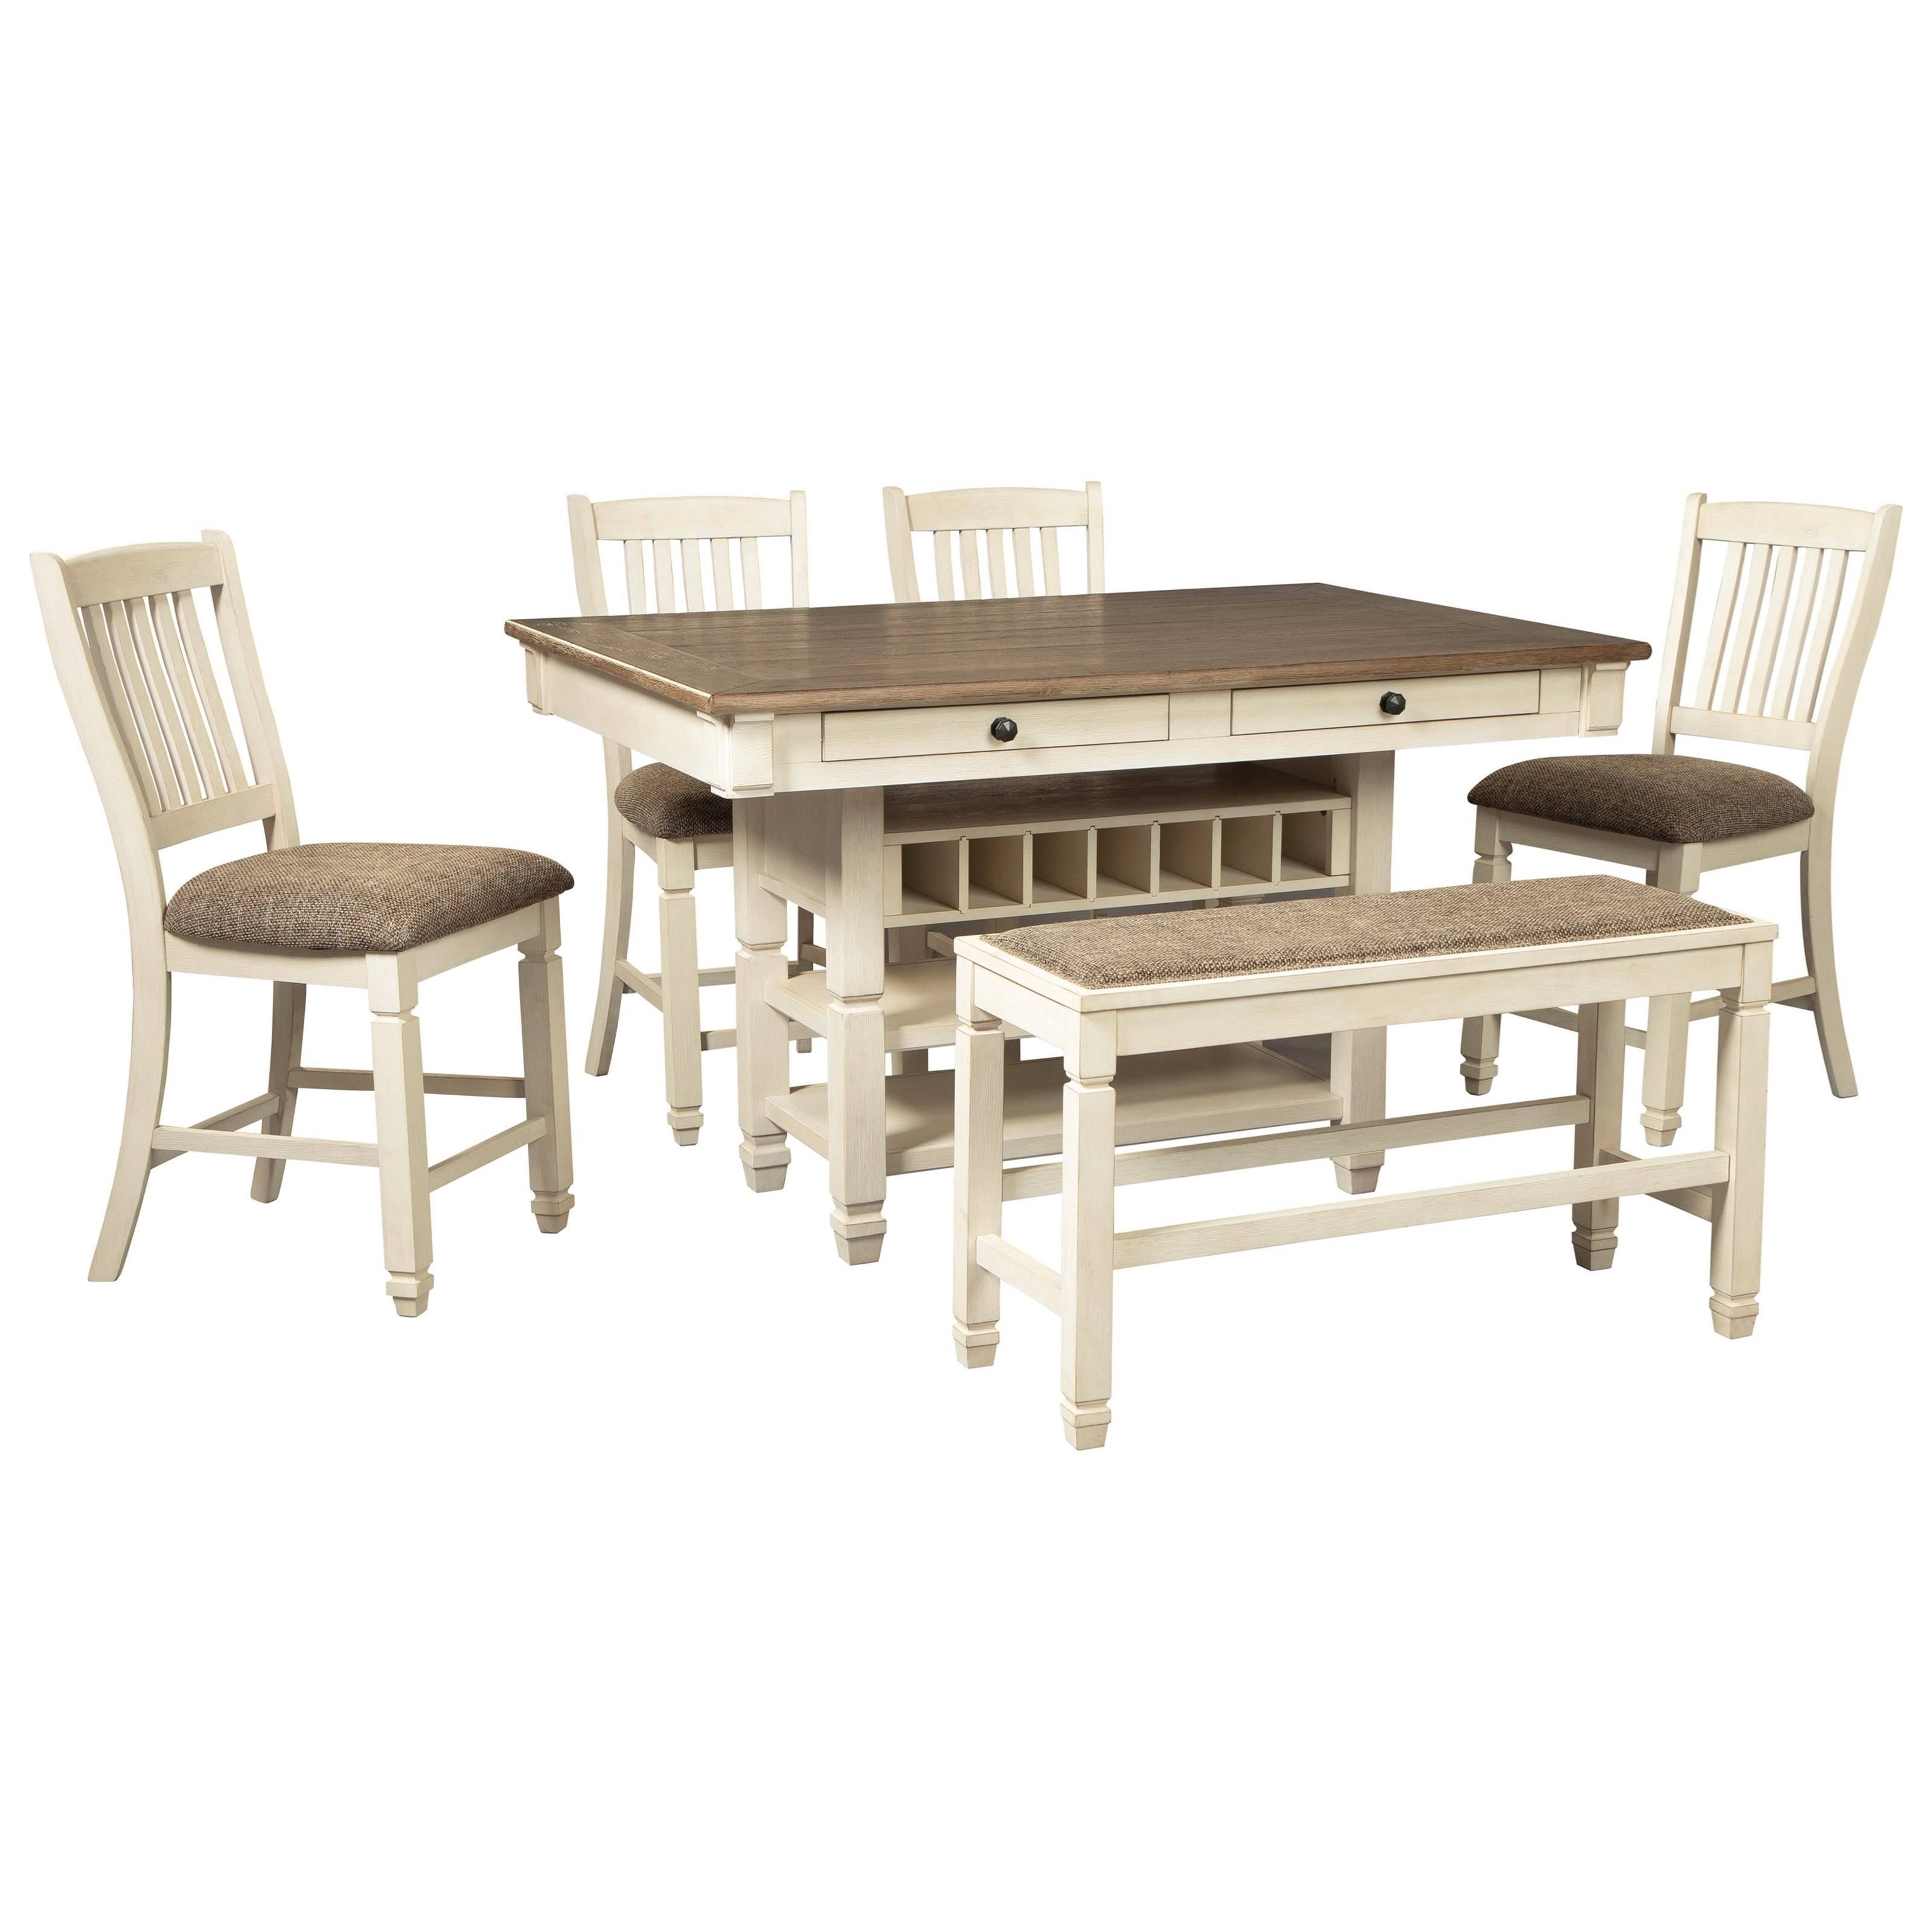 Bolanburg 6-Piece Counter Table Set with Bench by Signature Design by Ashley at Northeast Factory Direct